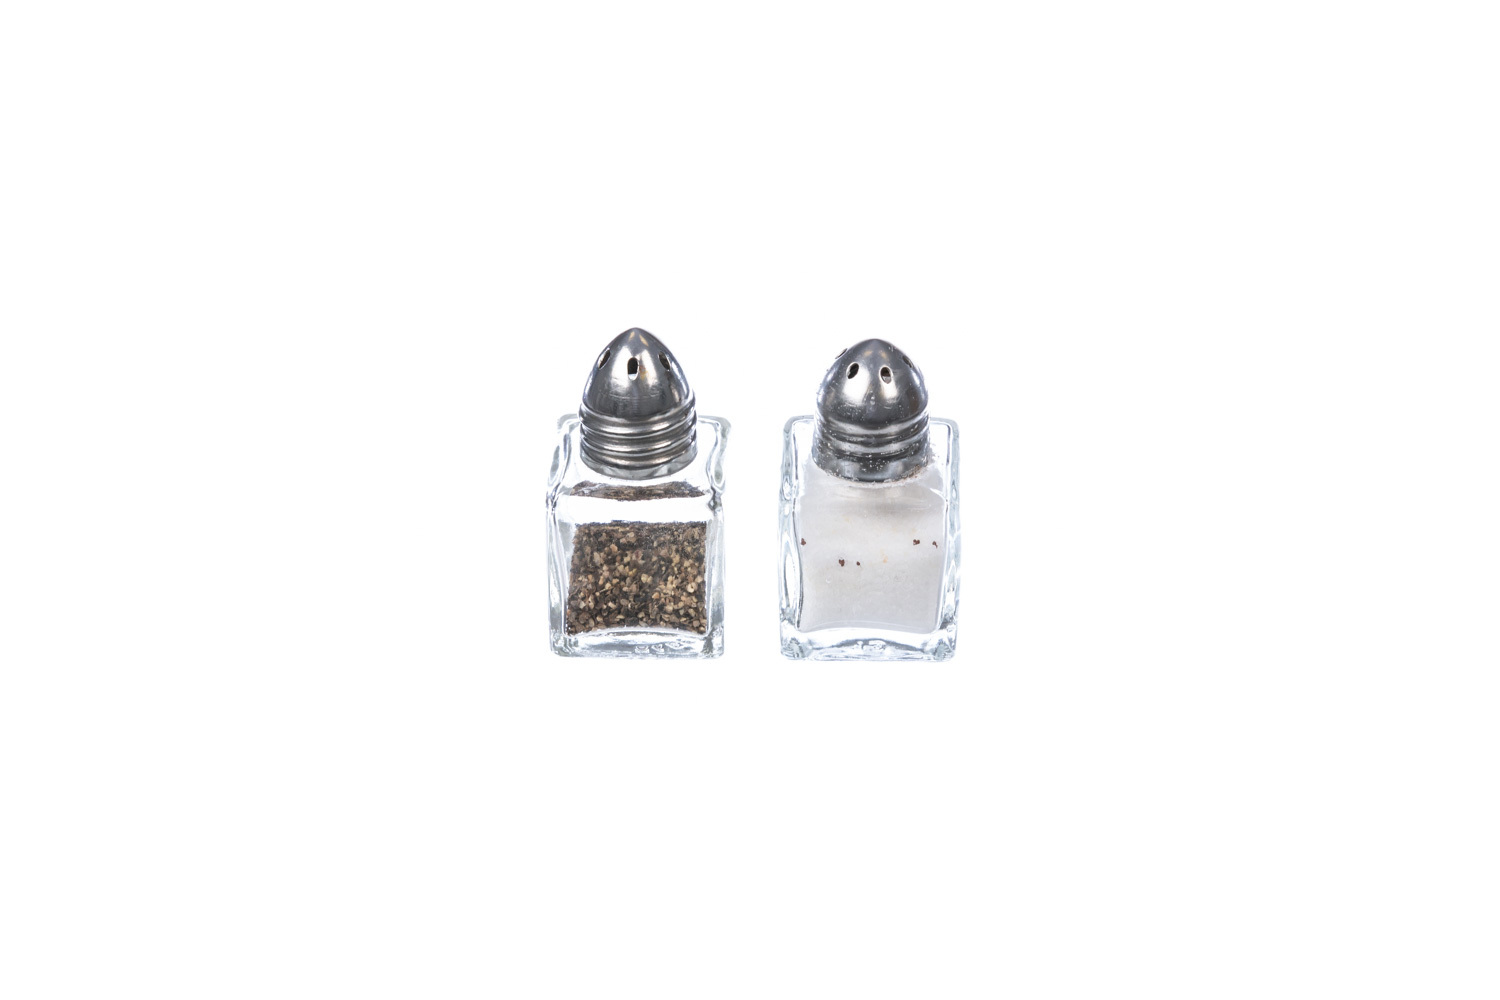 Cube Salt & Pepper Set